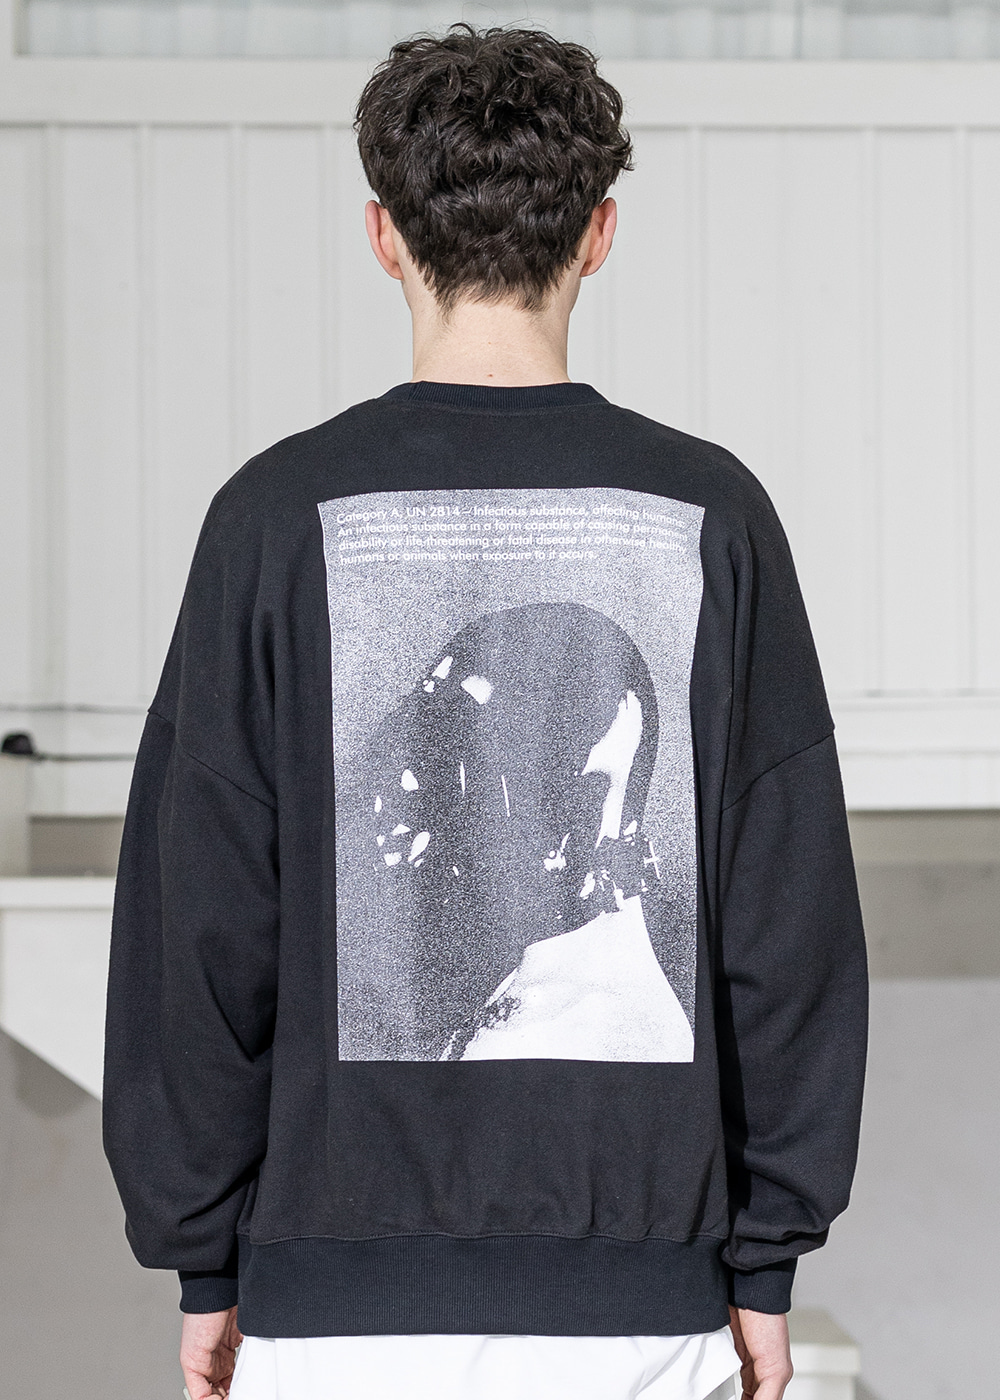 CLASSIFICATION OVERSIZED CREWNECK MSZCR001-BK